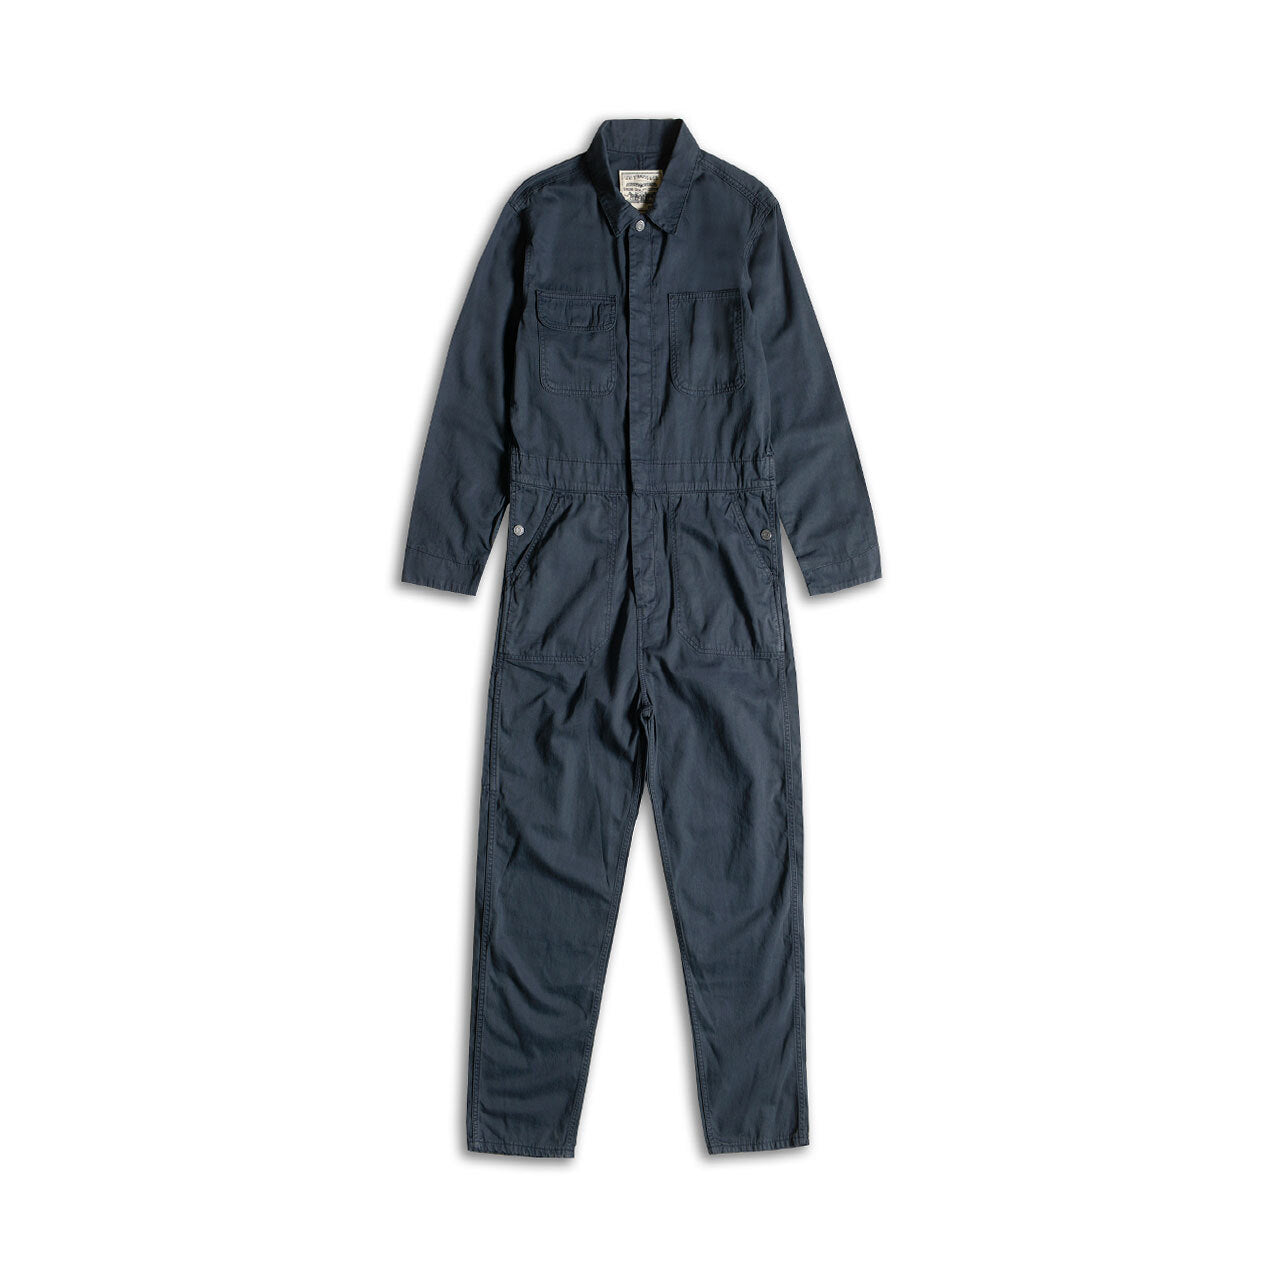 Levi's WellThread Stay Loose Coveralls